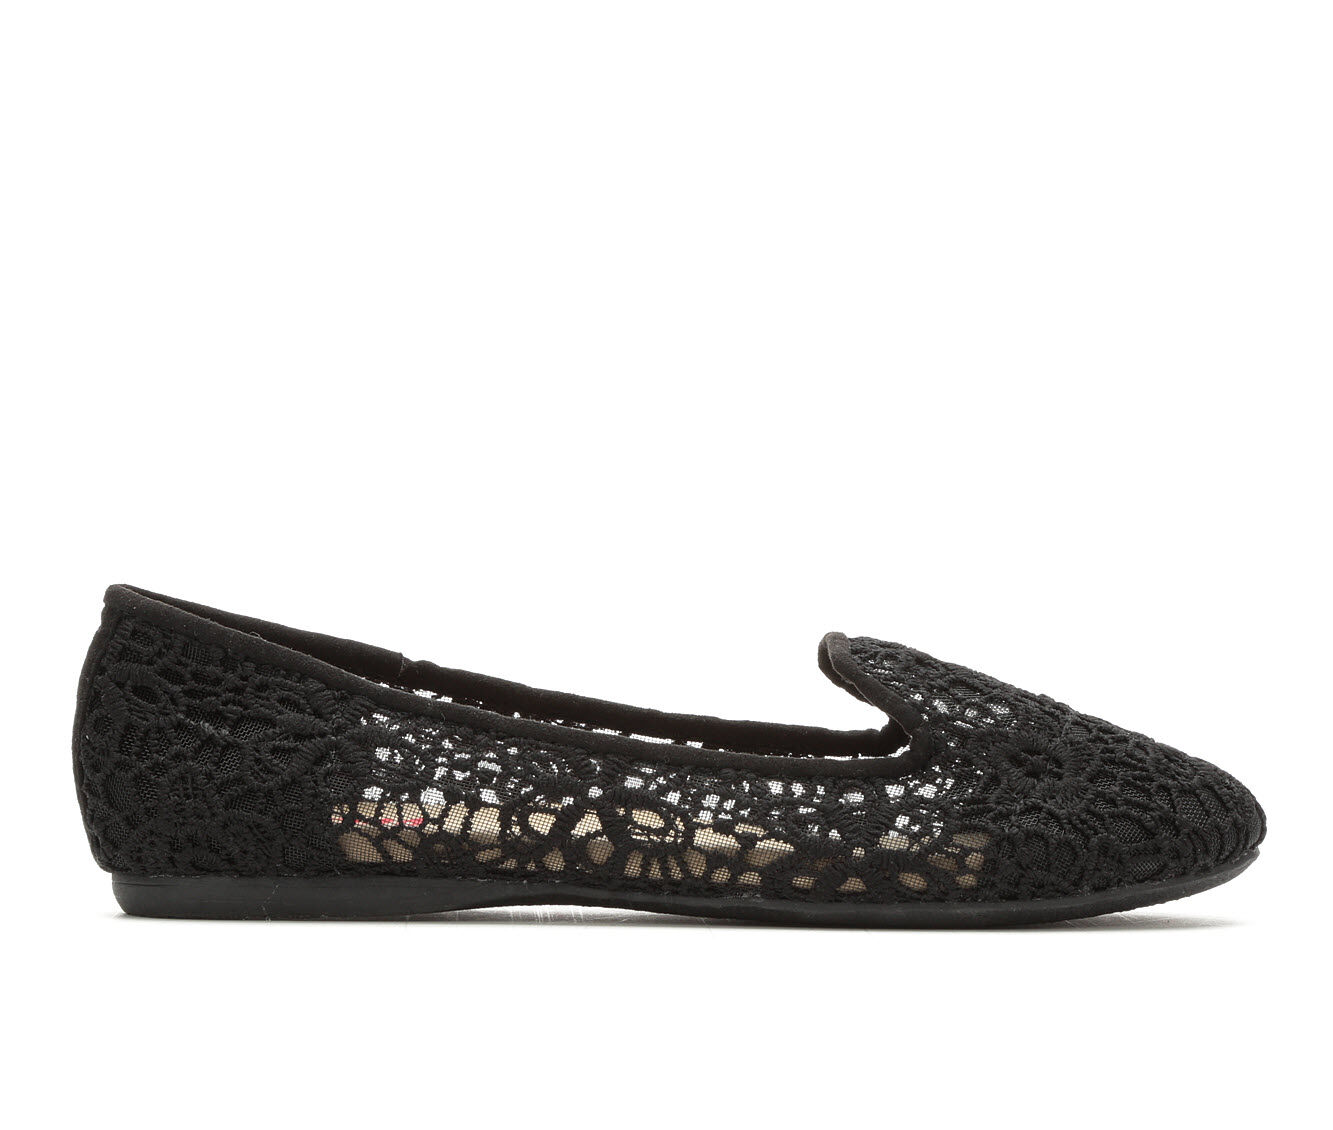 Women's Jellypop Cassian Flats Black Lace